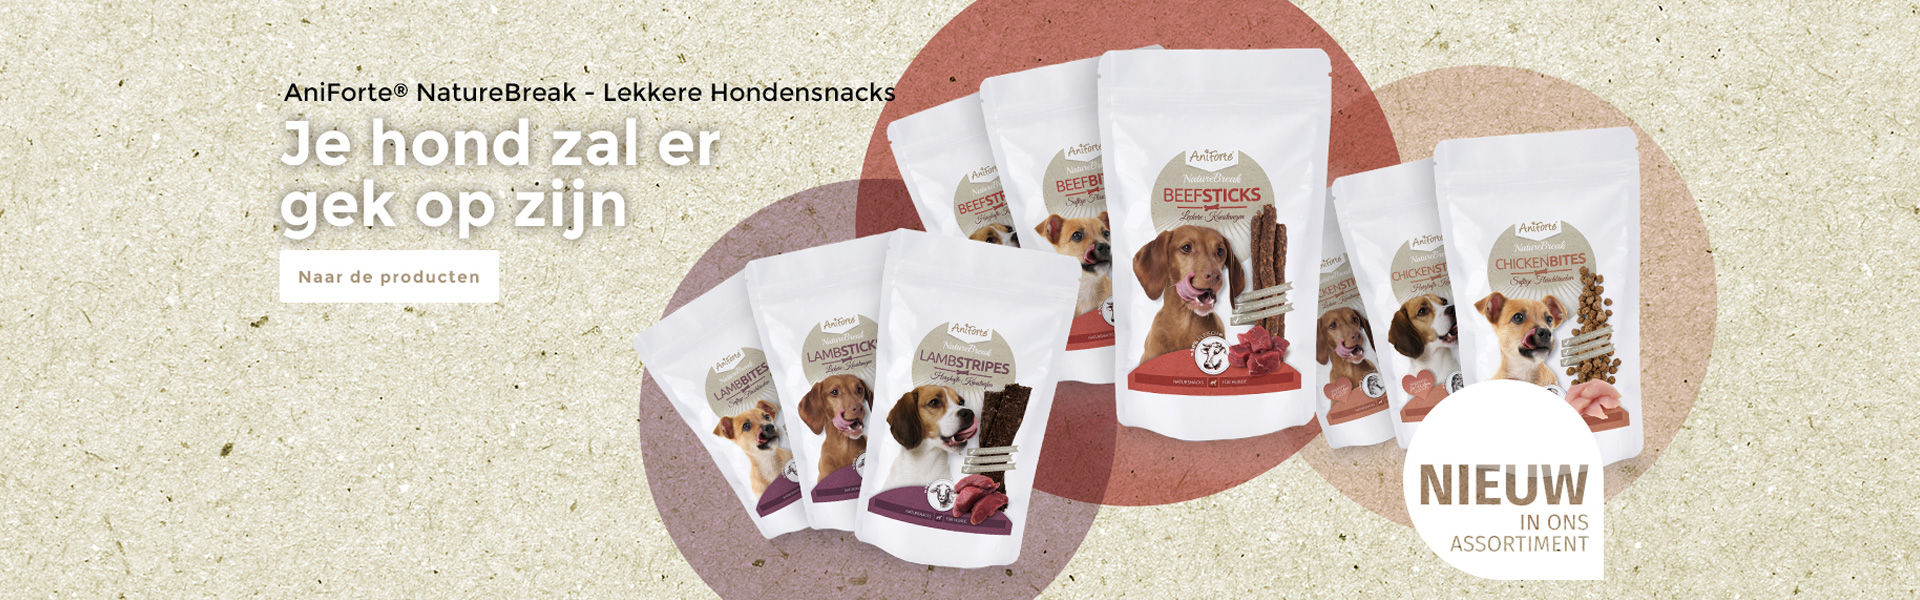 AniForte® NatureBreak - Lekkere hondesnacks